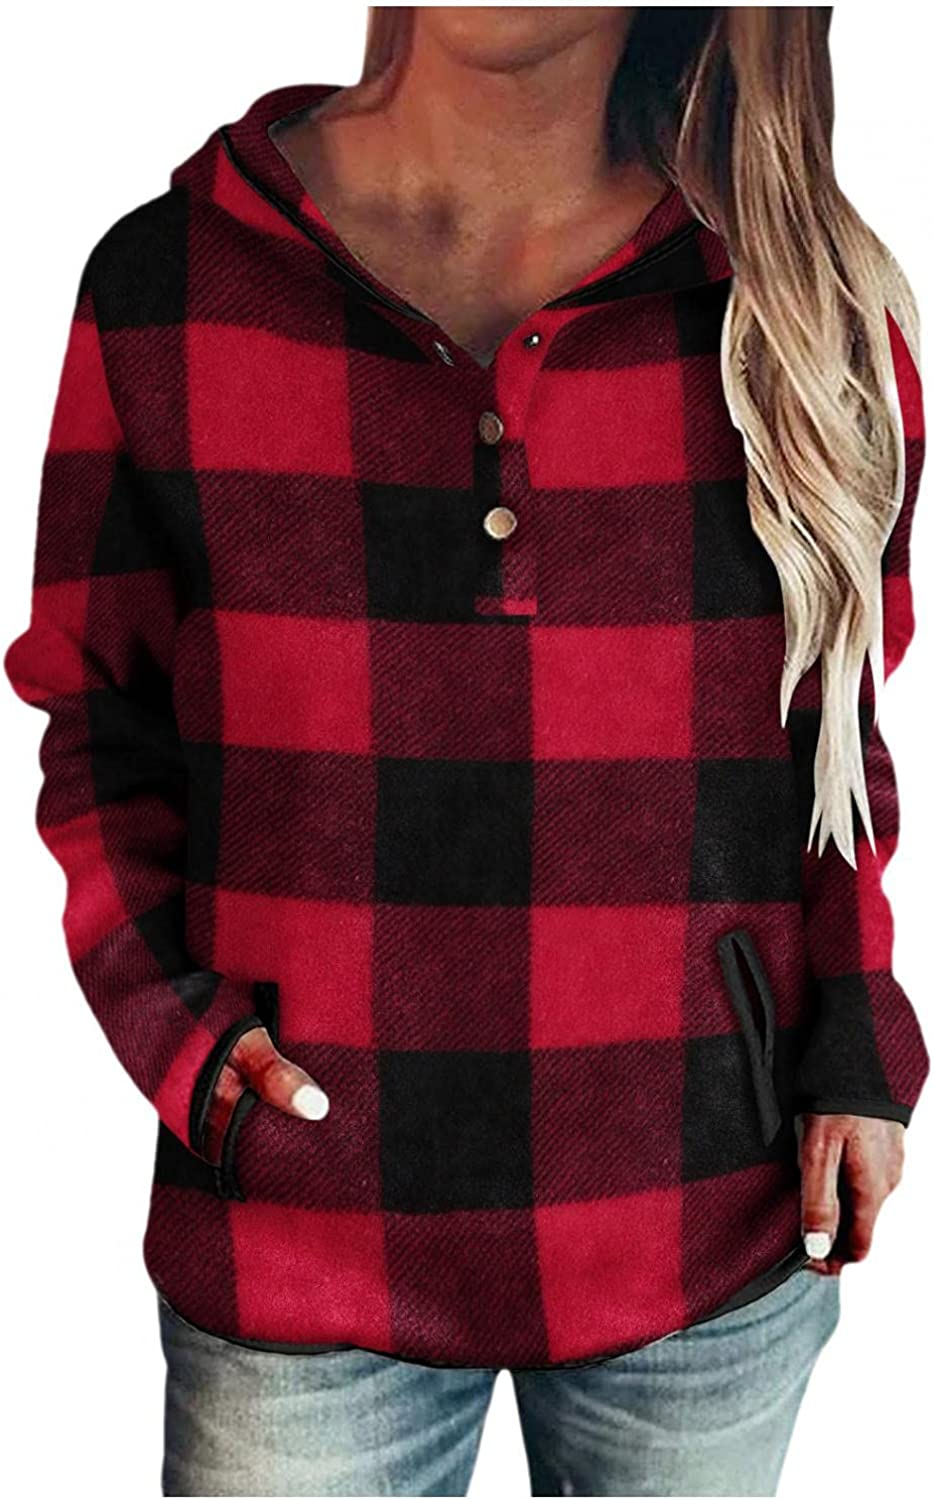 Hoodies for Women Casual Aesthetic Plaid Shirts Tops Long Sleeve Hooded Drawstring Pullover Loose Sweatshirts with Pocket